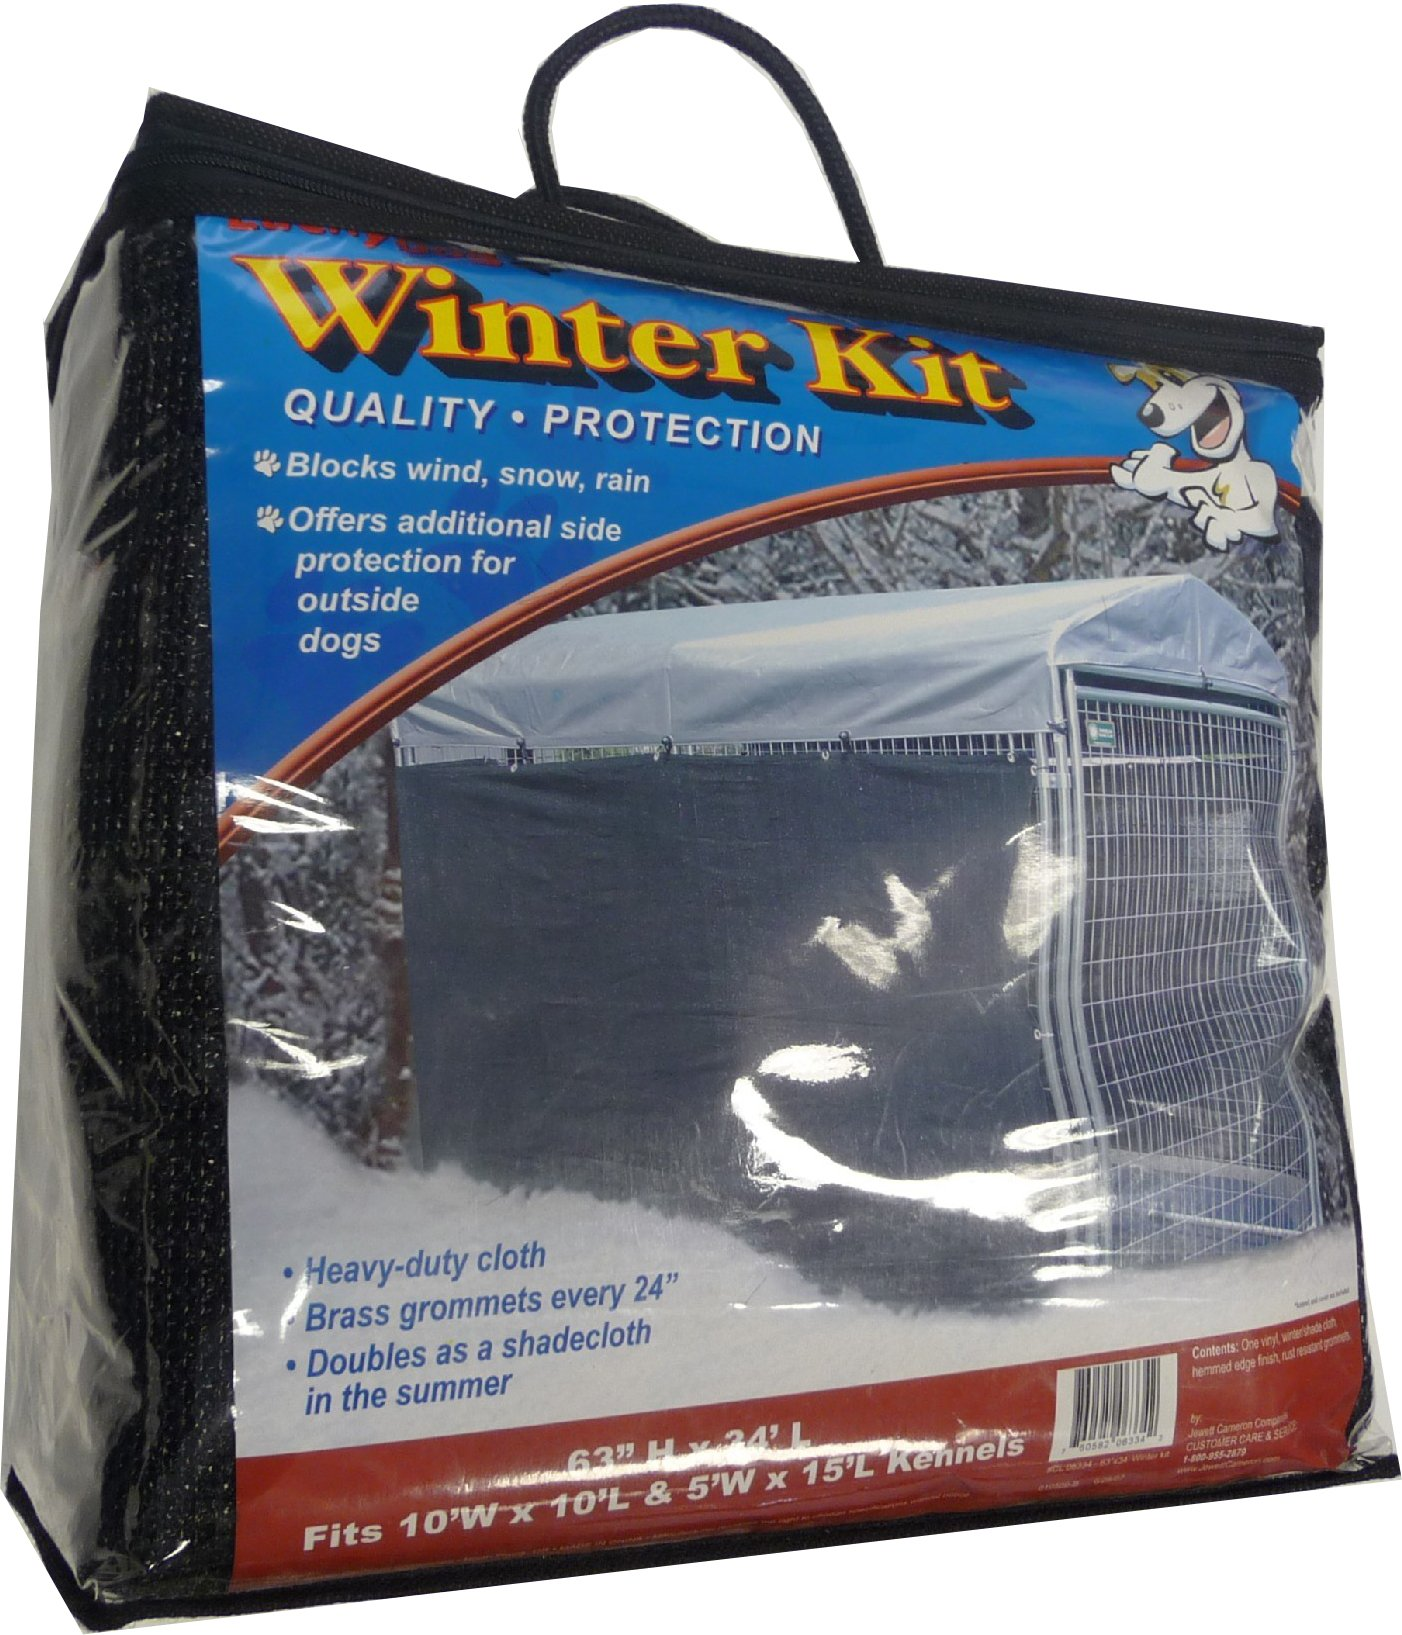 Lucky Dog Weatherguard Extra Large Shade Cloth/Winterization Kit with Grommets (57in. H x 34ft. L), Fits 10ft. X 10ft. Or 5ft. X 15ft. Outdoor Cages and Pens by Lucky Dog